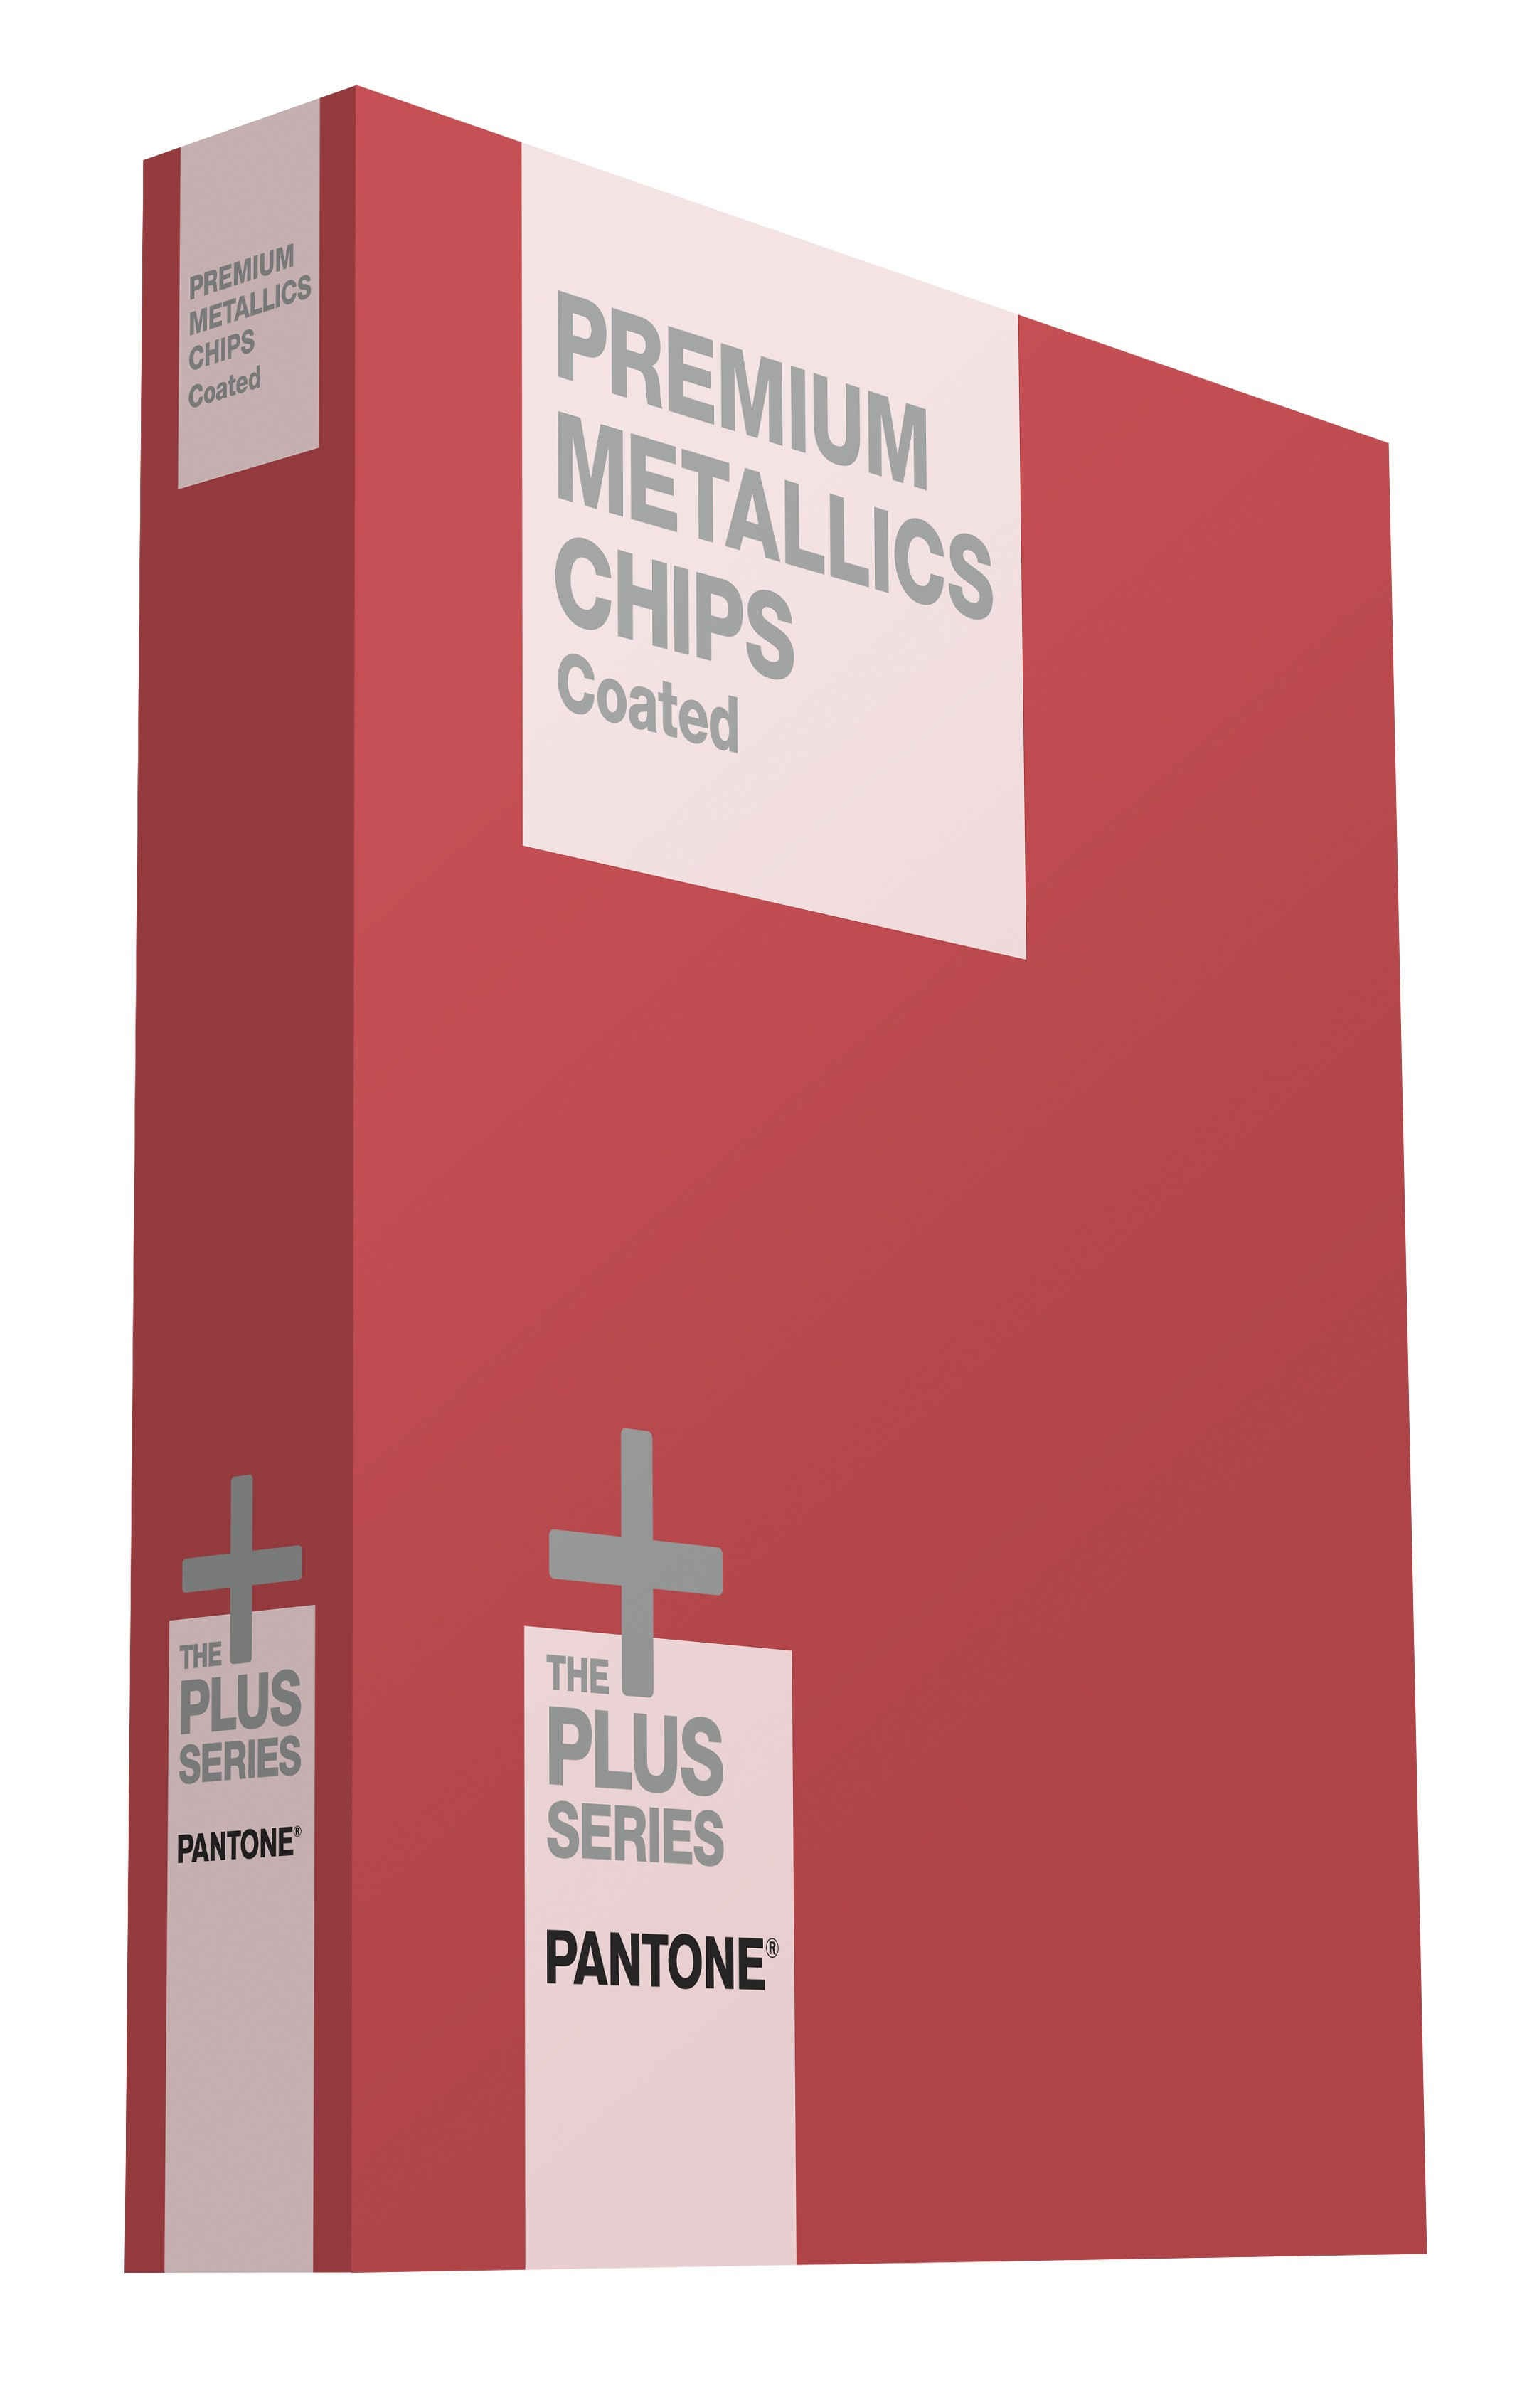 Pantone Premium Metallics Chips Coated GB1505 (Plus Series)